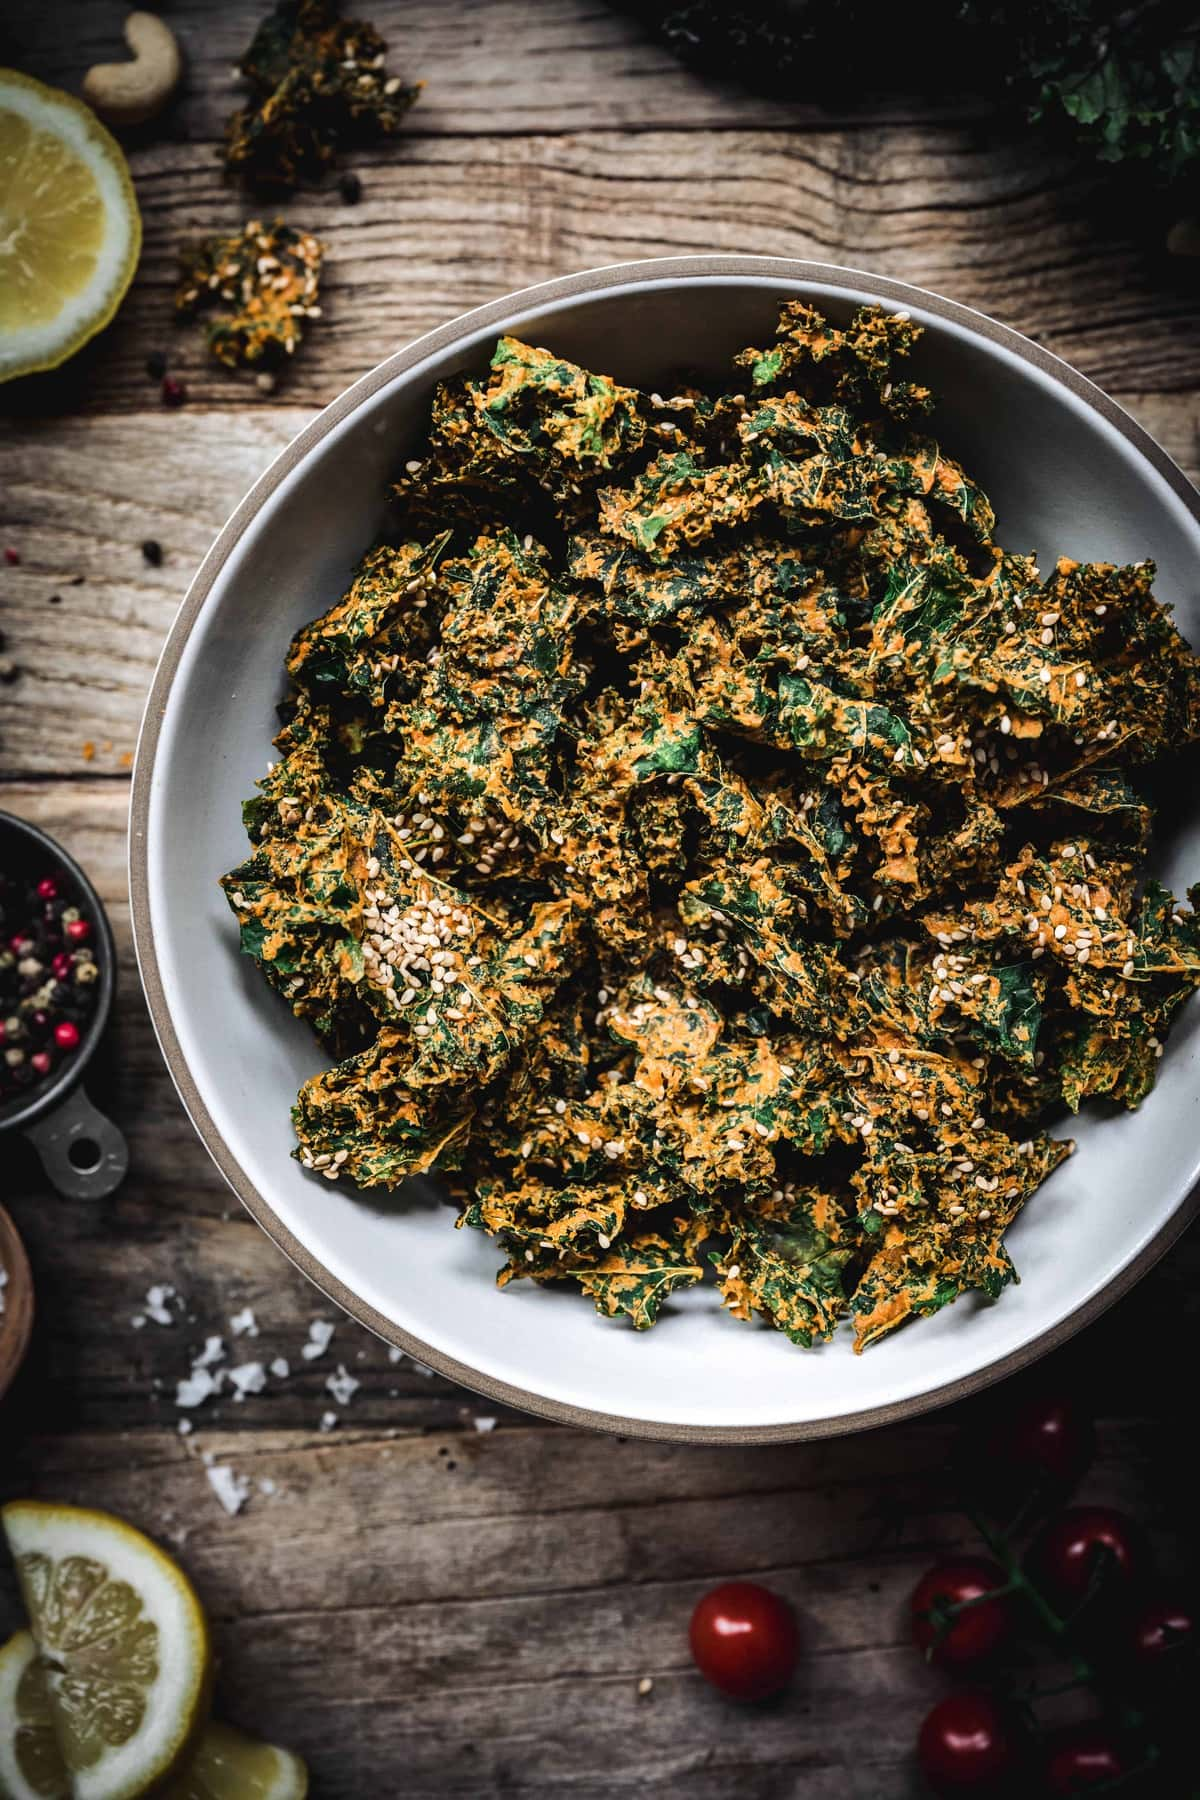 Close up of cheesy vegan kale chips in a white bowl on wood table